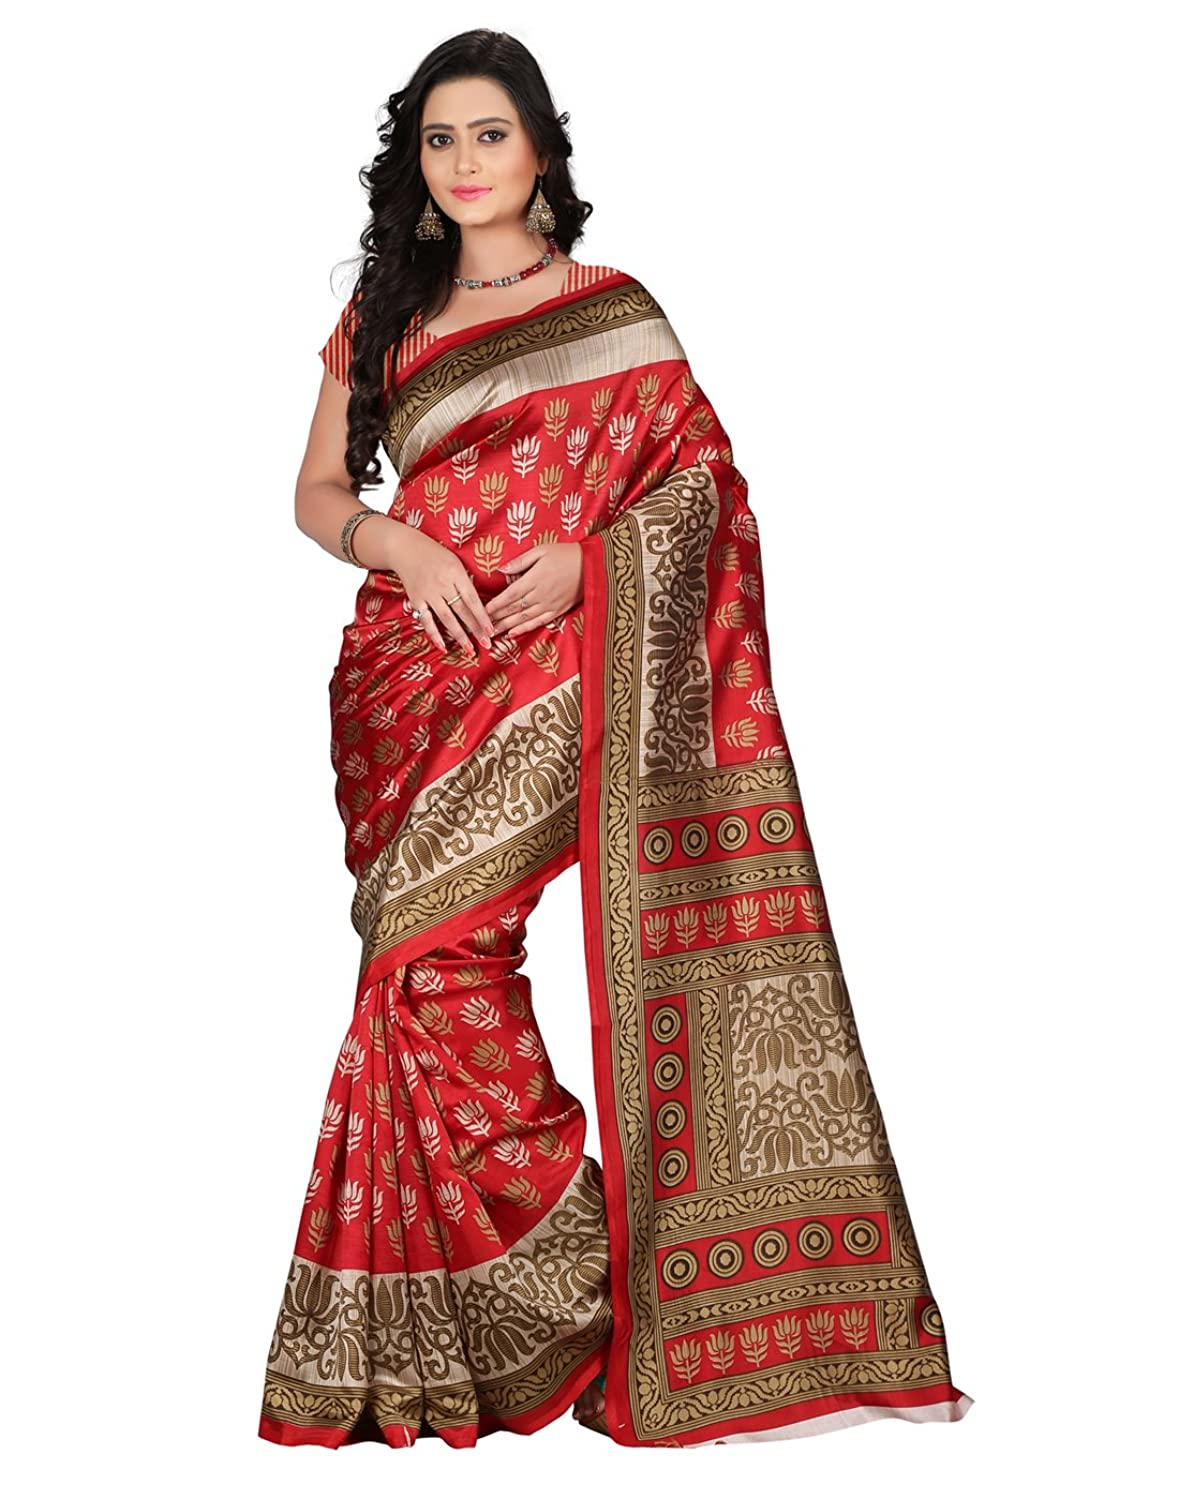 624cdaf6528d9 Top 10 Collection of Sarees under 500 Rupees - Best Collection of Sarees